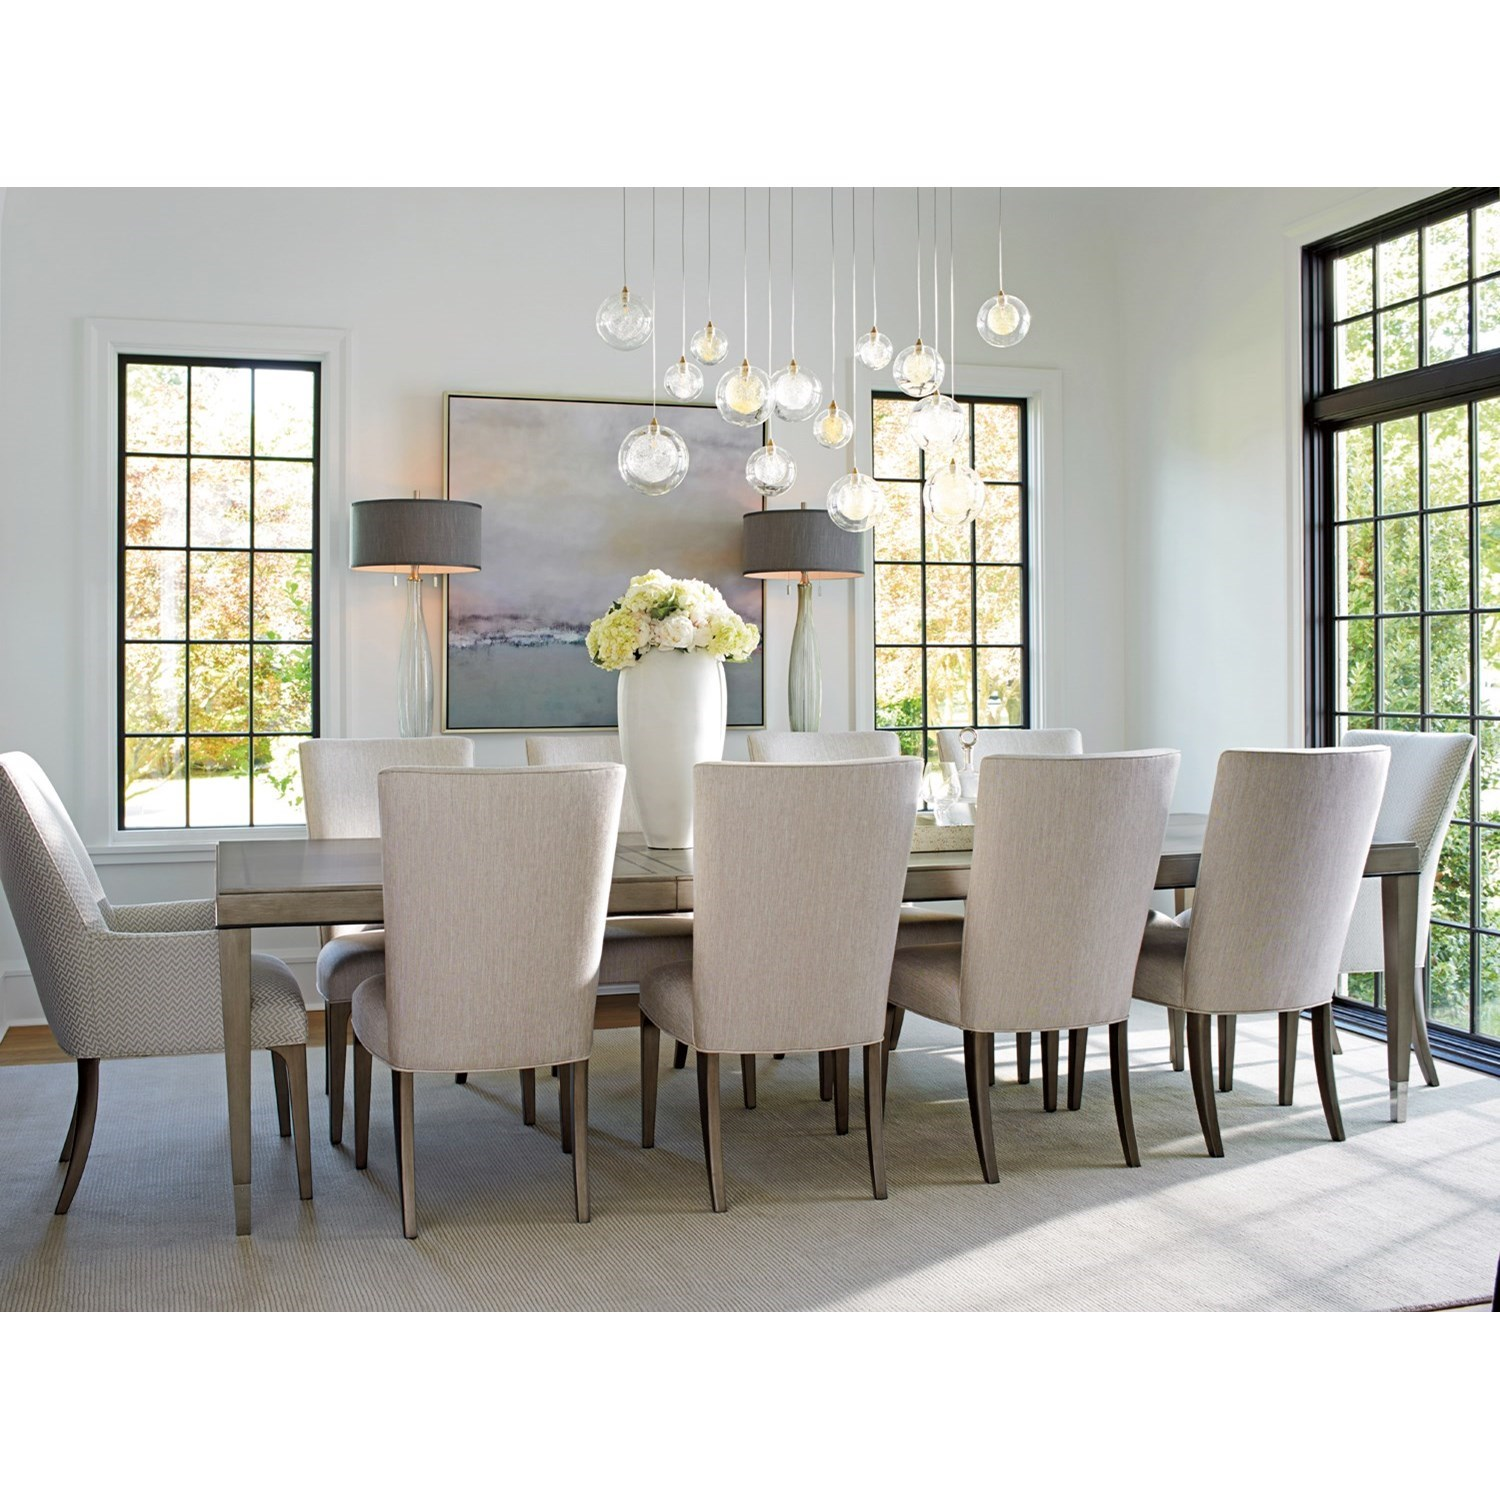 Ariana 11 Pc Dining Set by Lexington at Furniture Fair - North Carolina